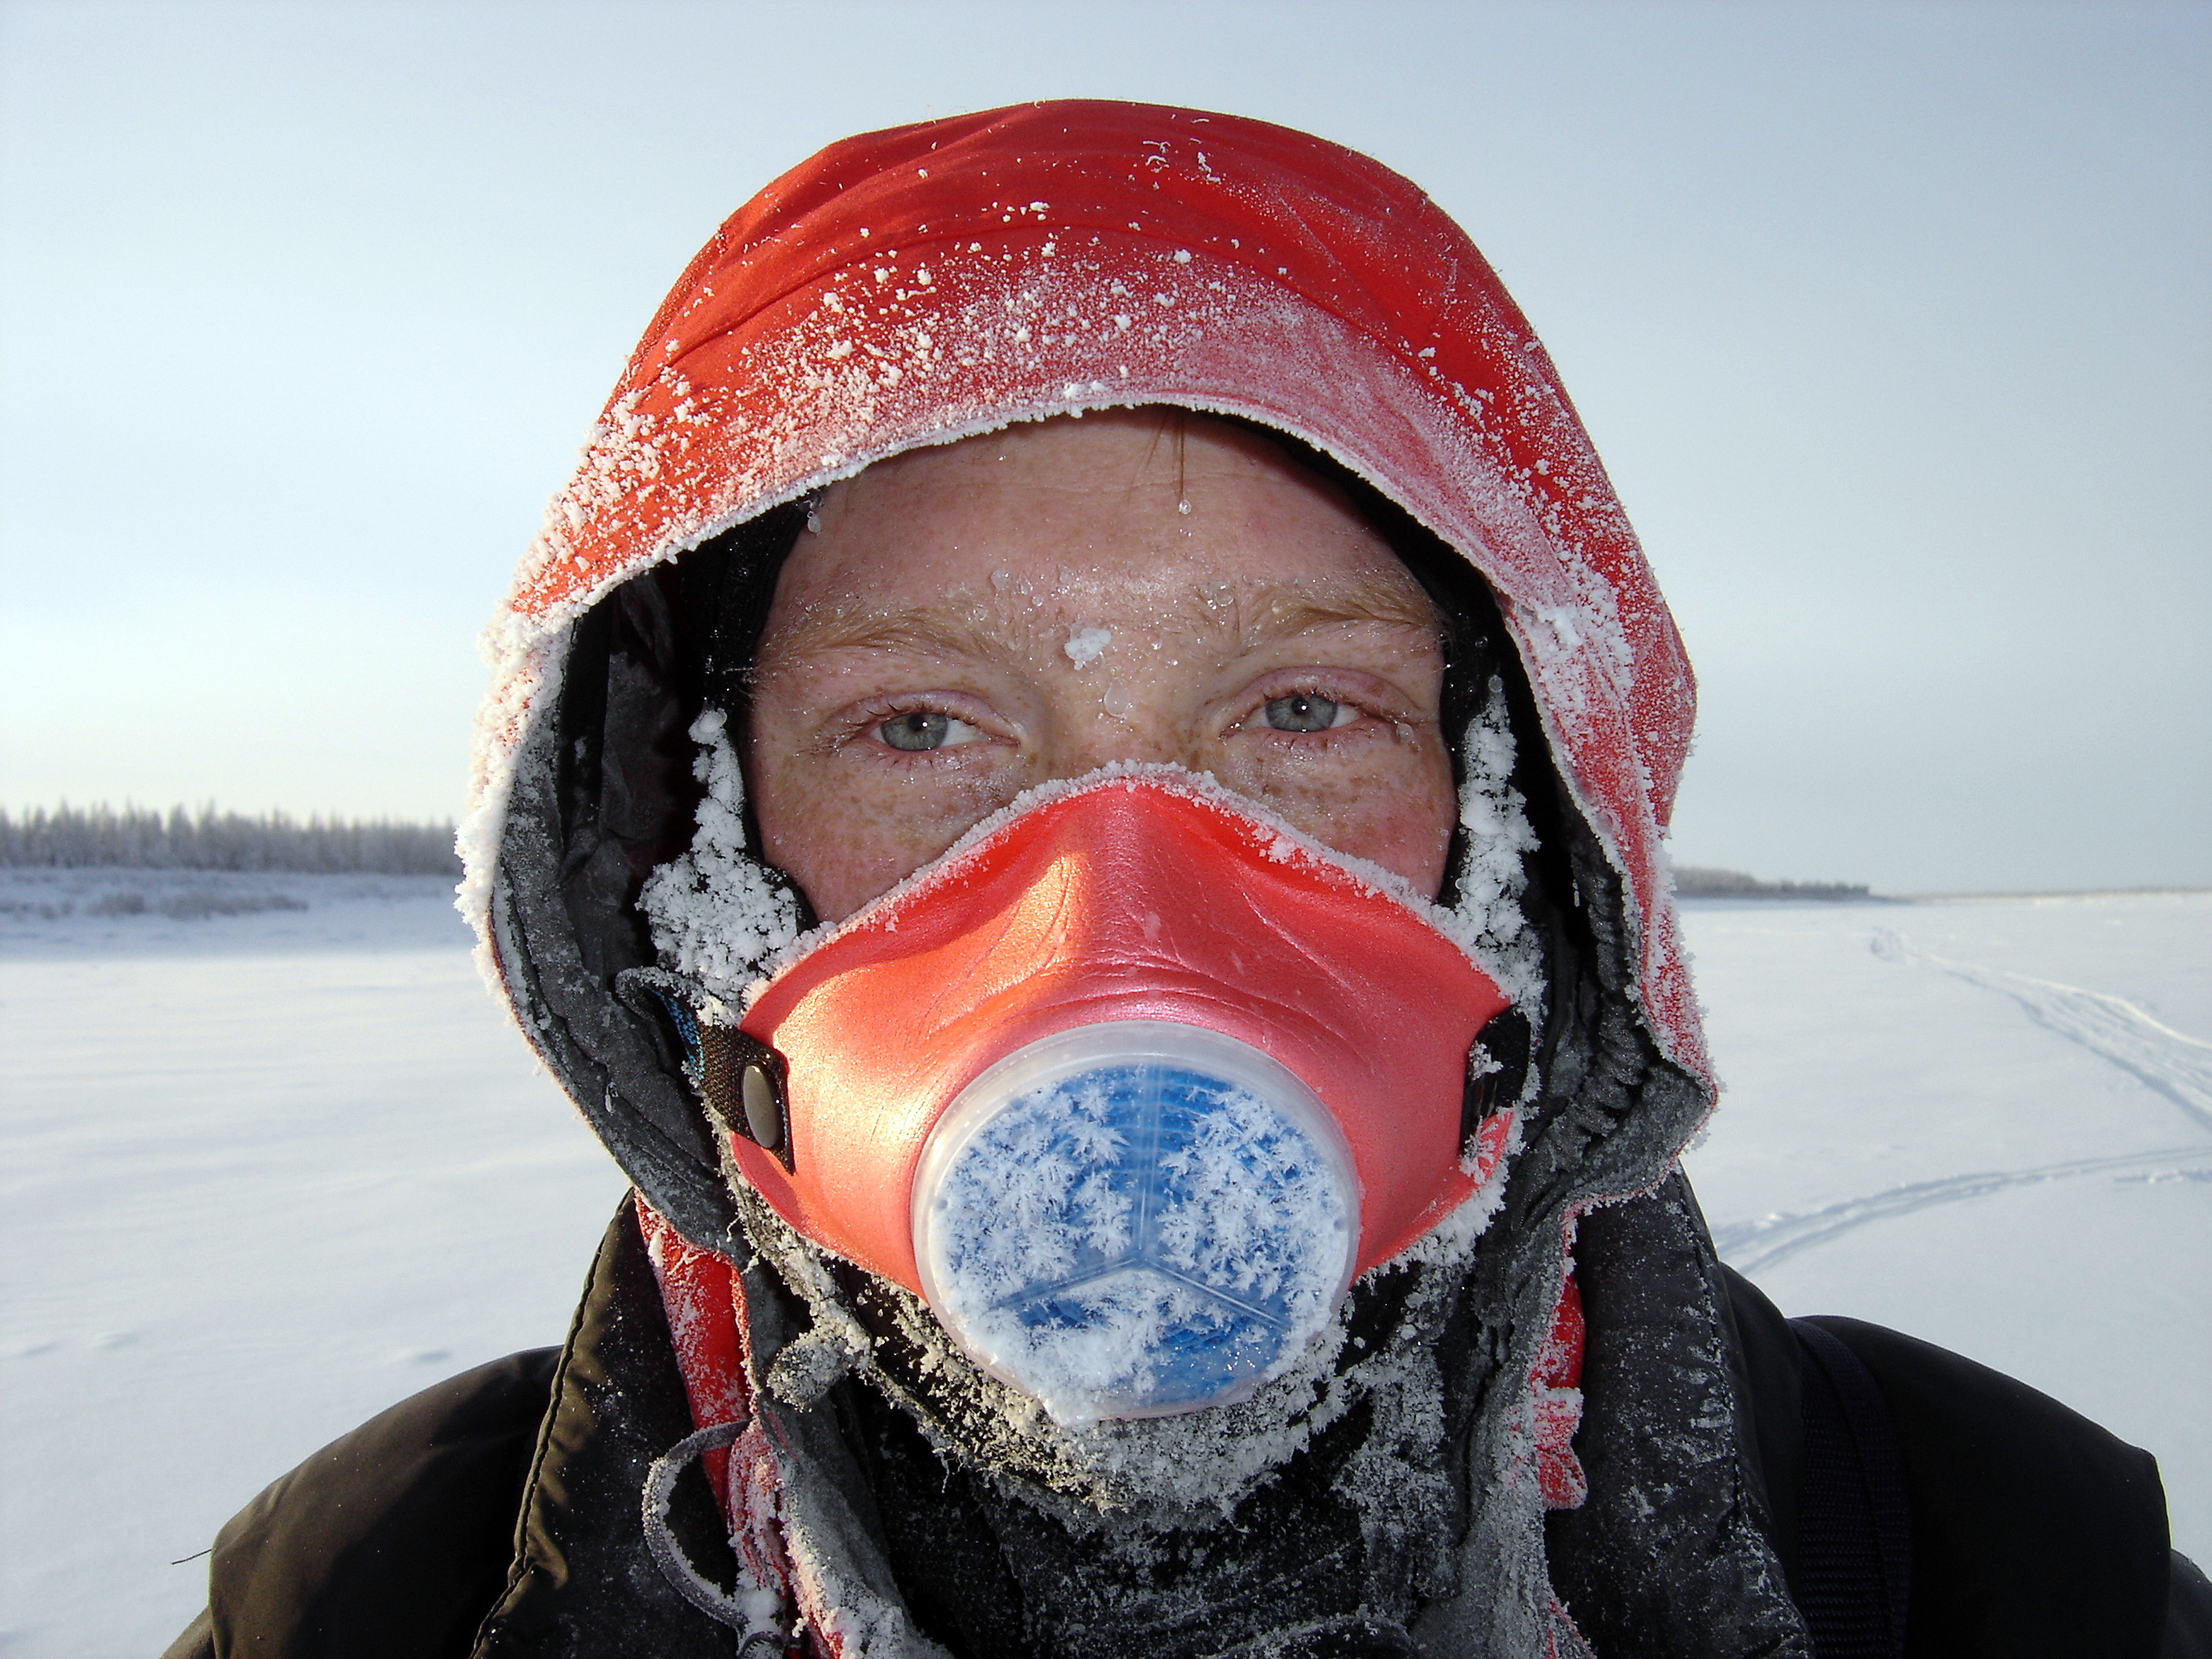 Every single piece of equipment that we´re using on this Expedition, is the result of an ongoing development, which has taken place since the father of all polar travel, Frithjof Nansen, in the late 19th Century, started looking for the optimal equipment to use during physical travels in cold climates.